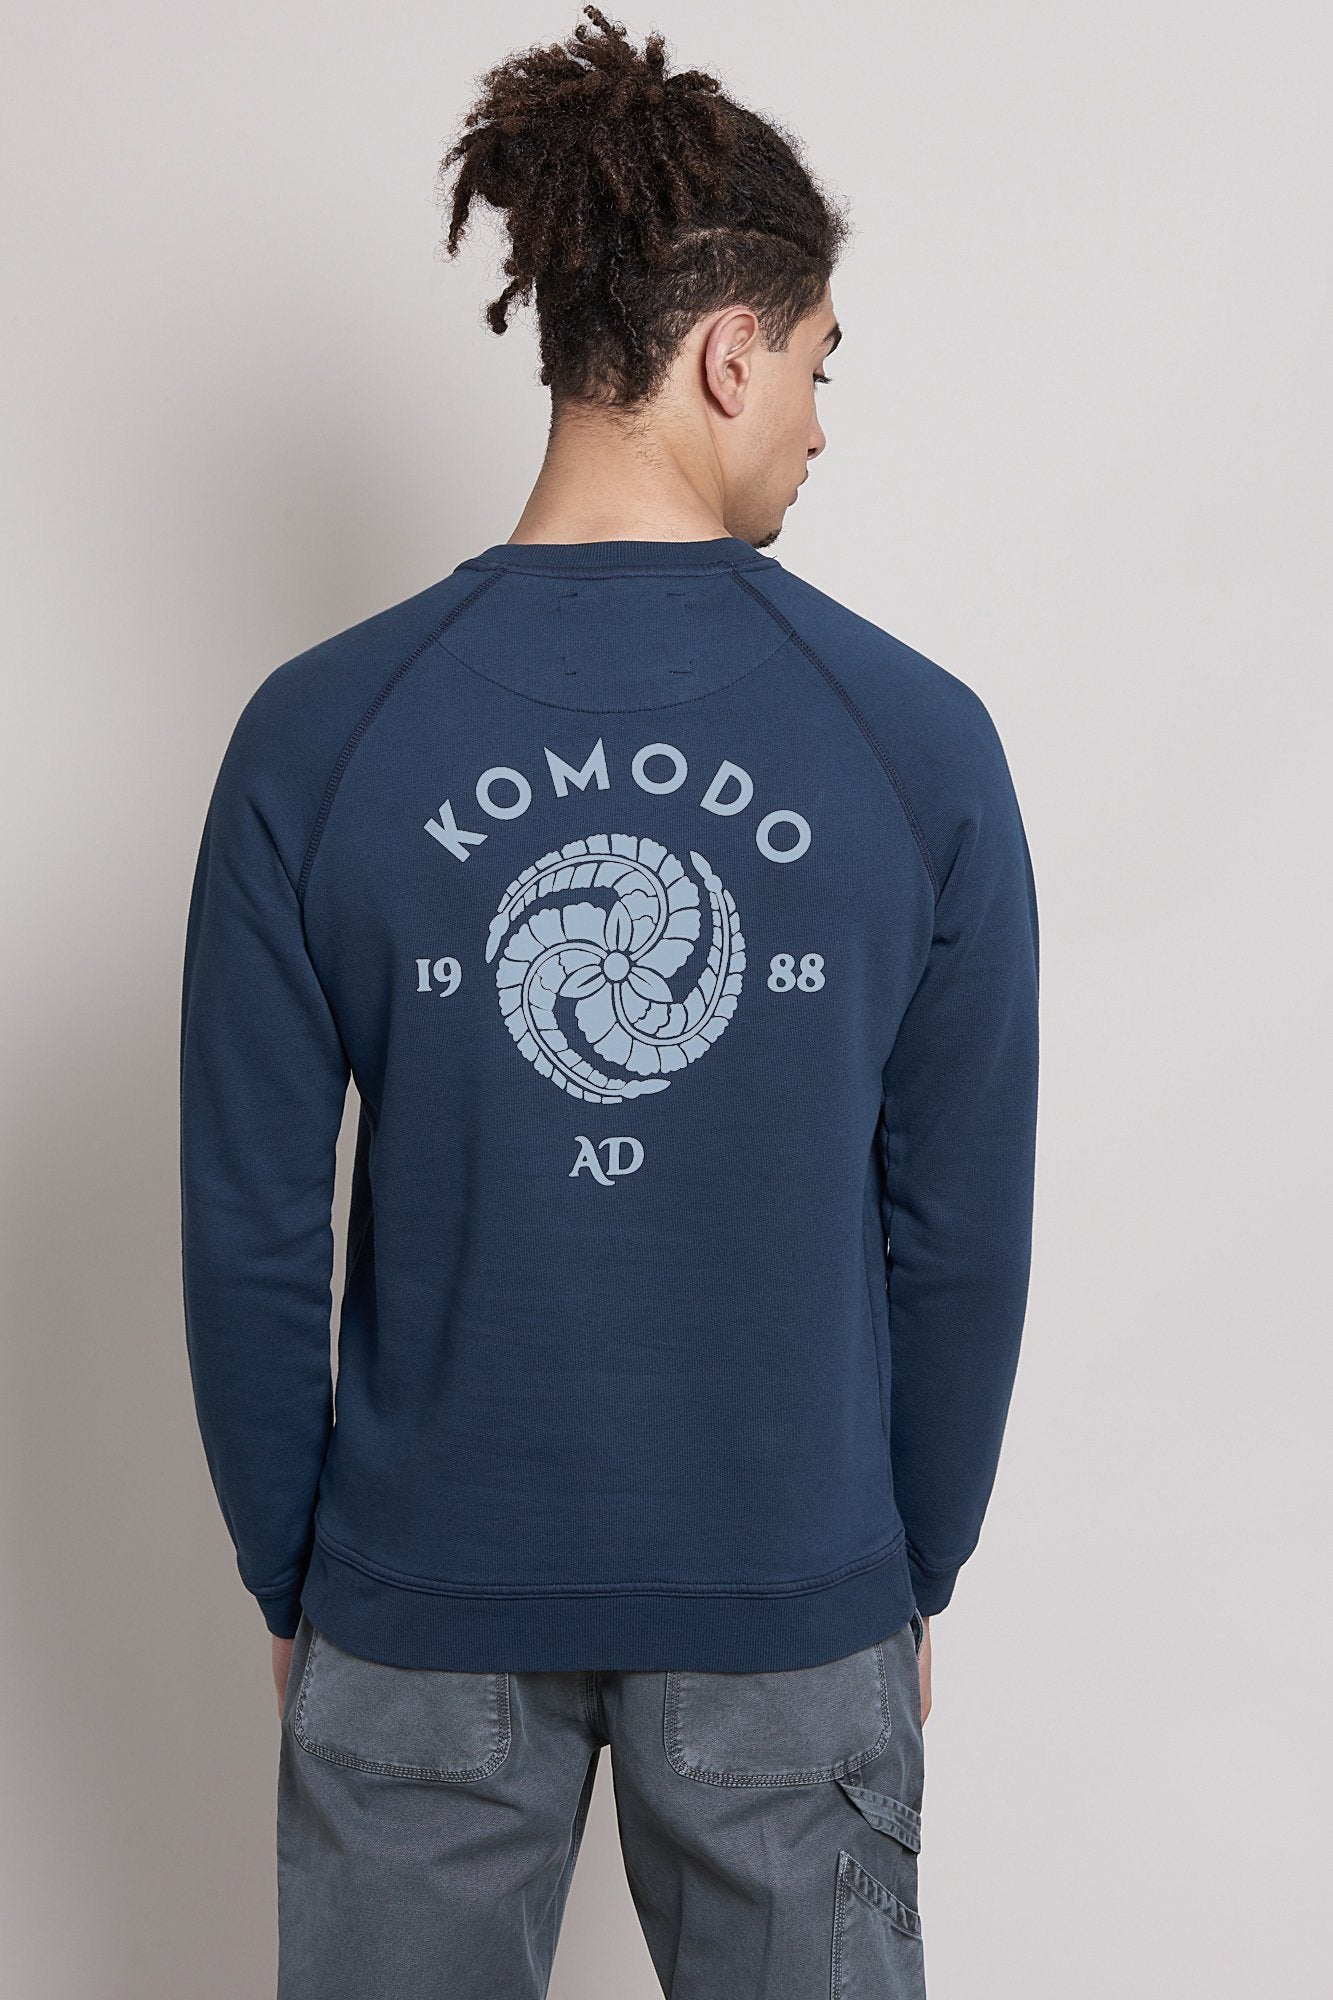 CREST ANTON Organic Cotton Sweat - Komodo Fashion